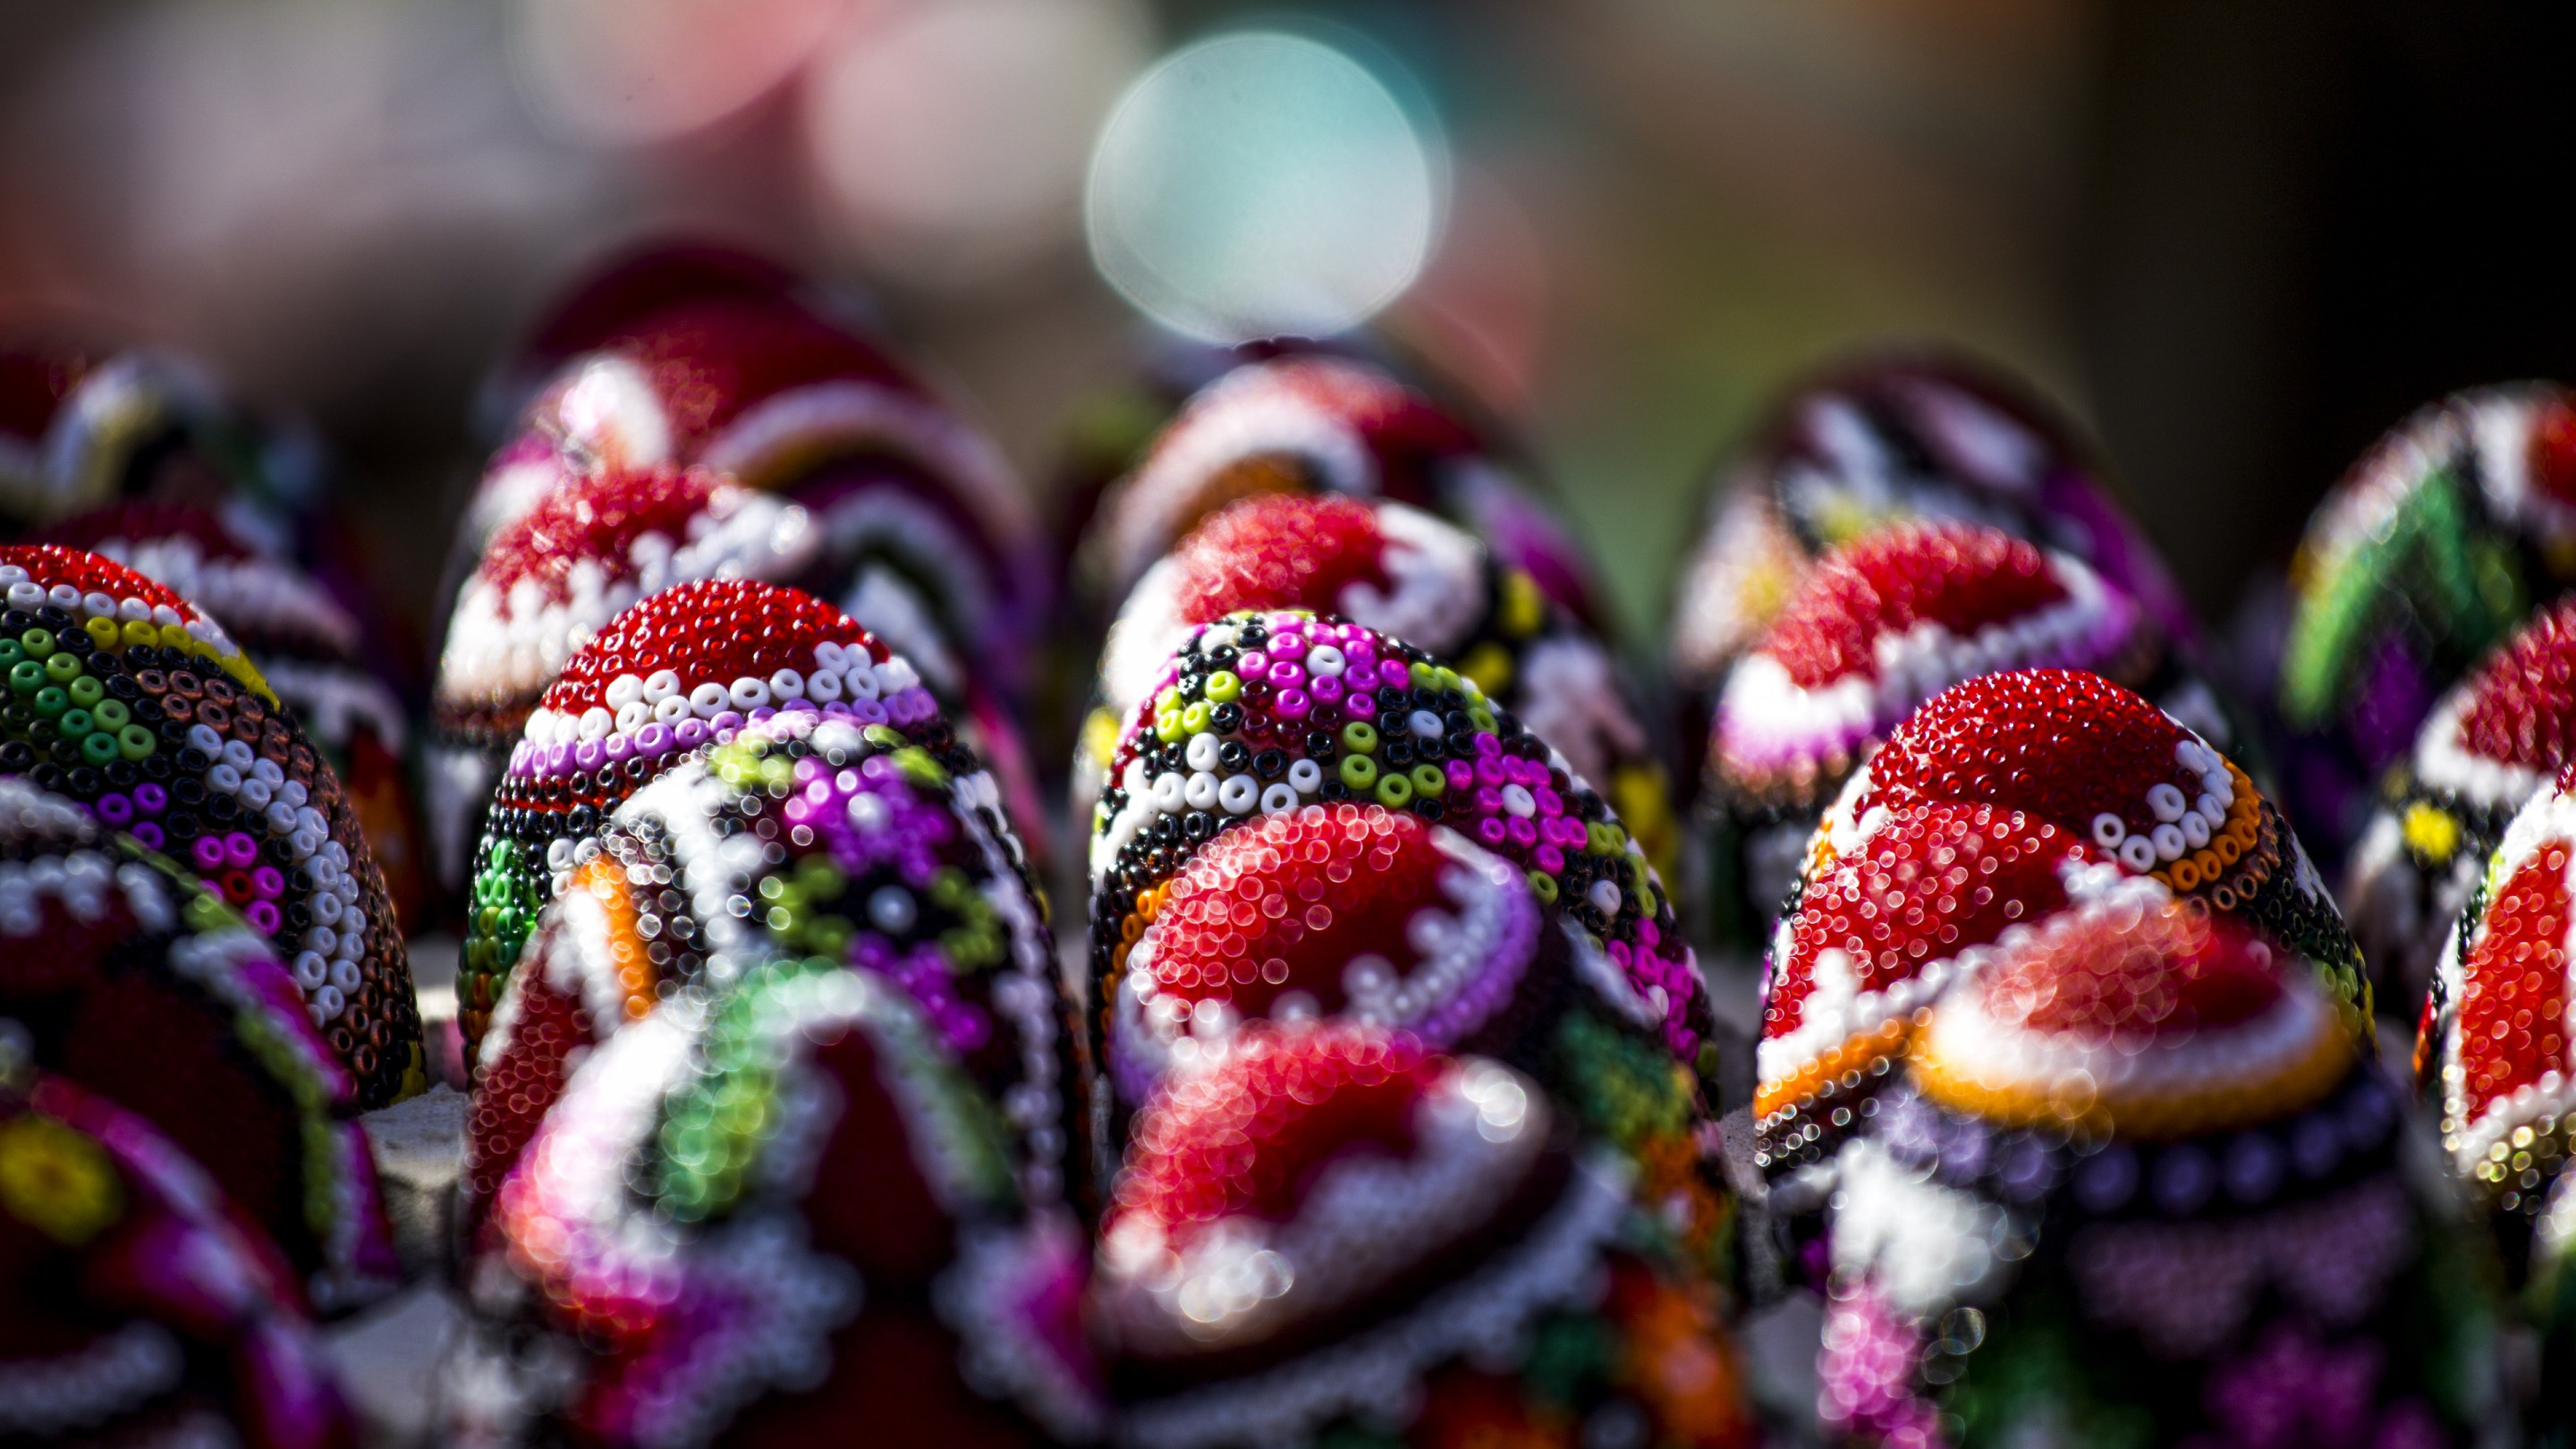 Easter eggs from Bucovina, Romania wallpaper 2880x1620